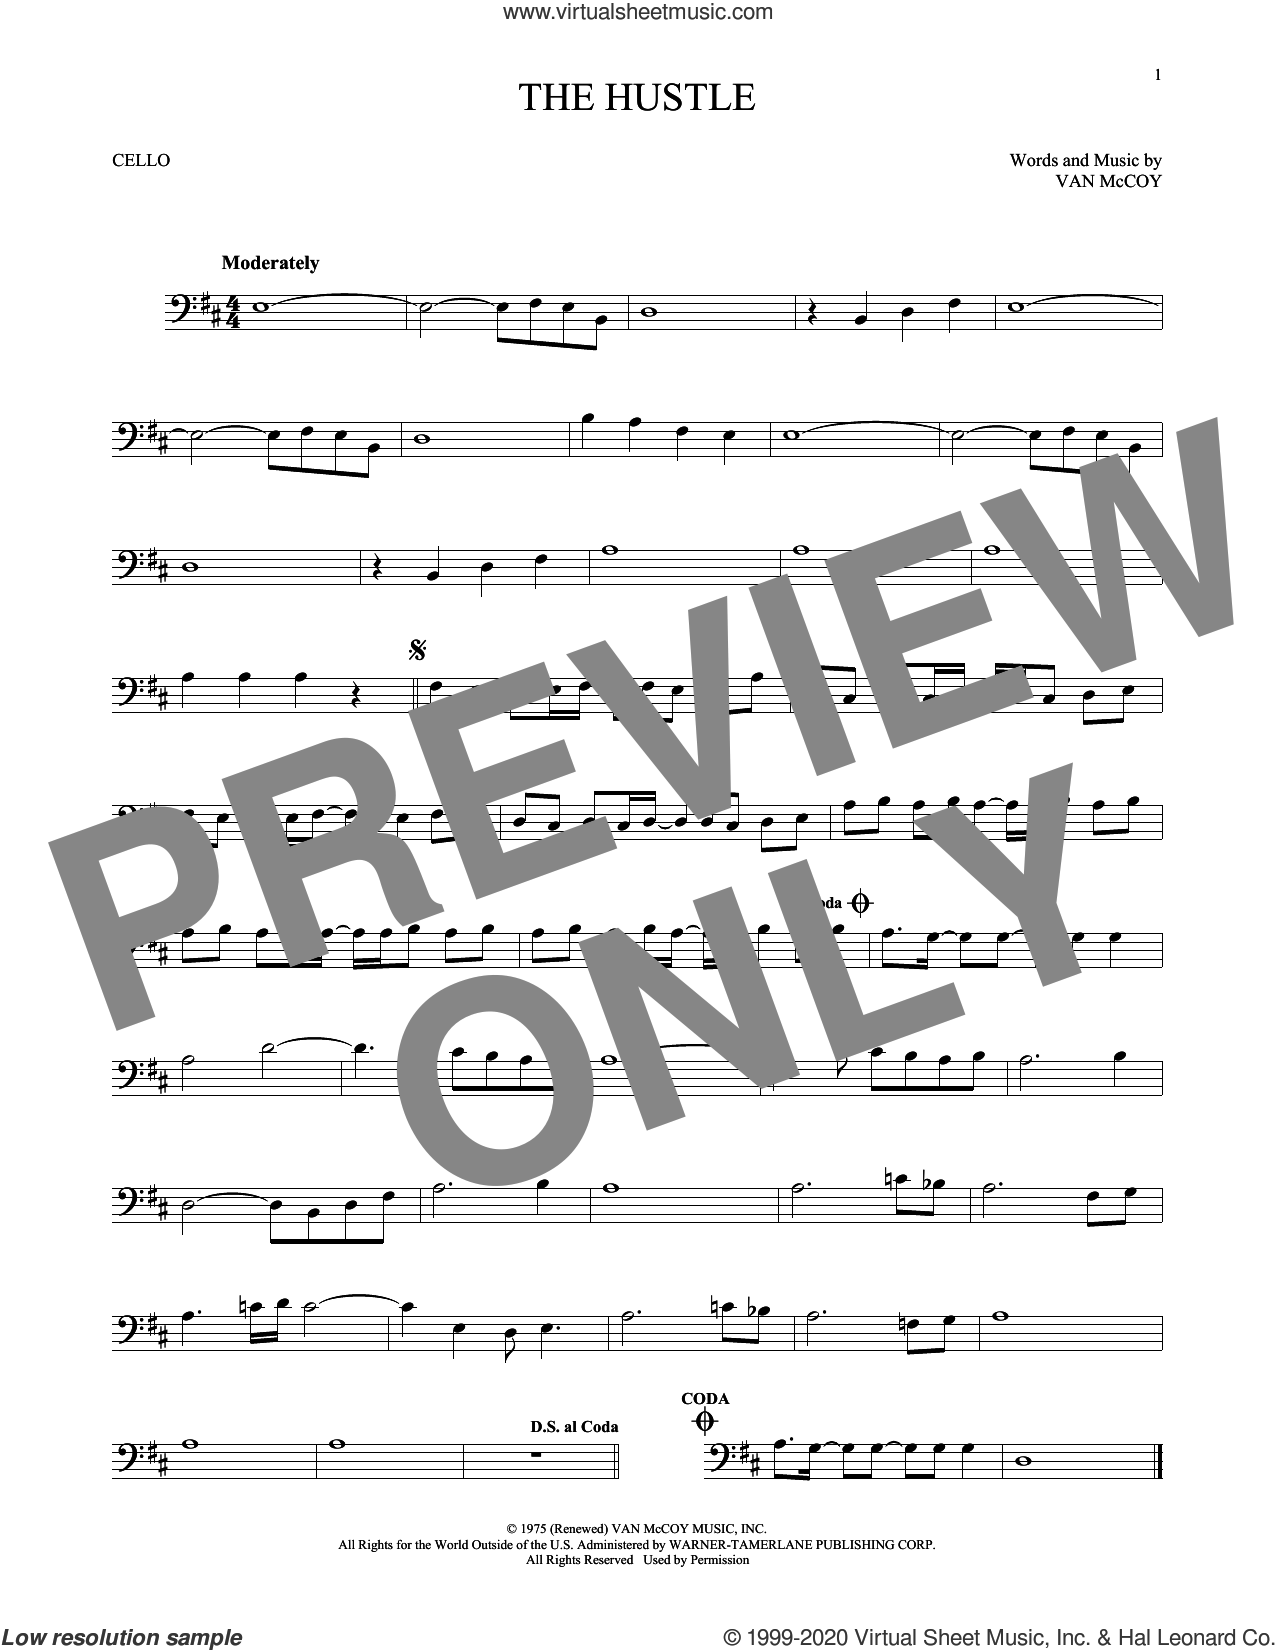 The Hustle sheet music for cello solo by Van McCoy, intermediate skill level